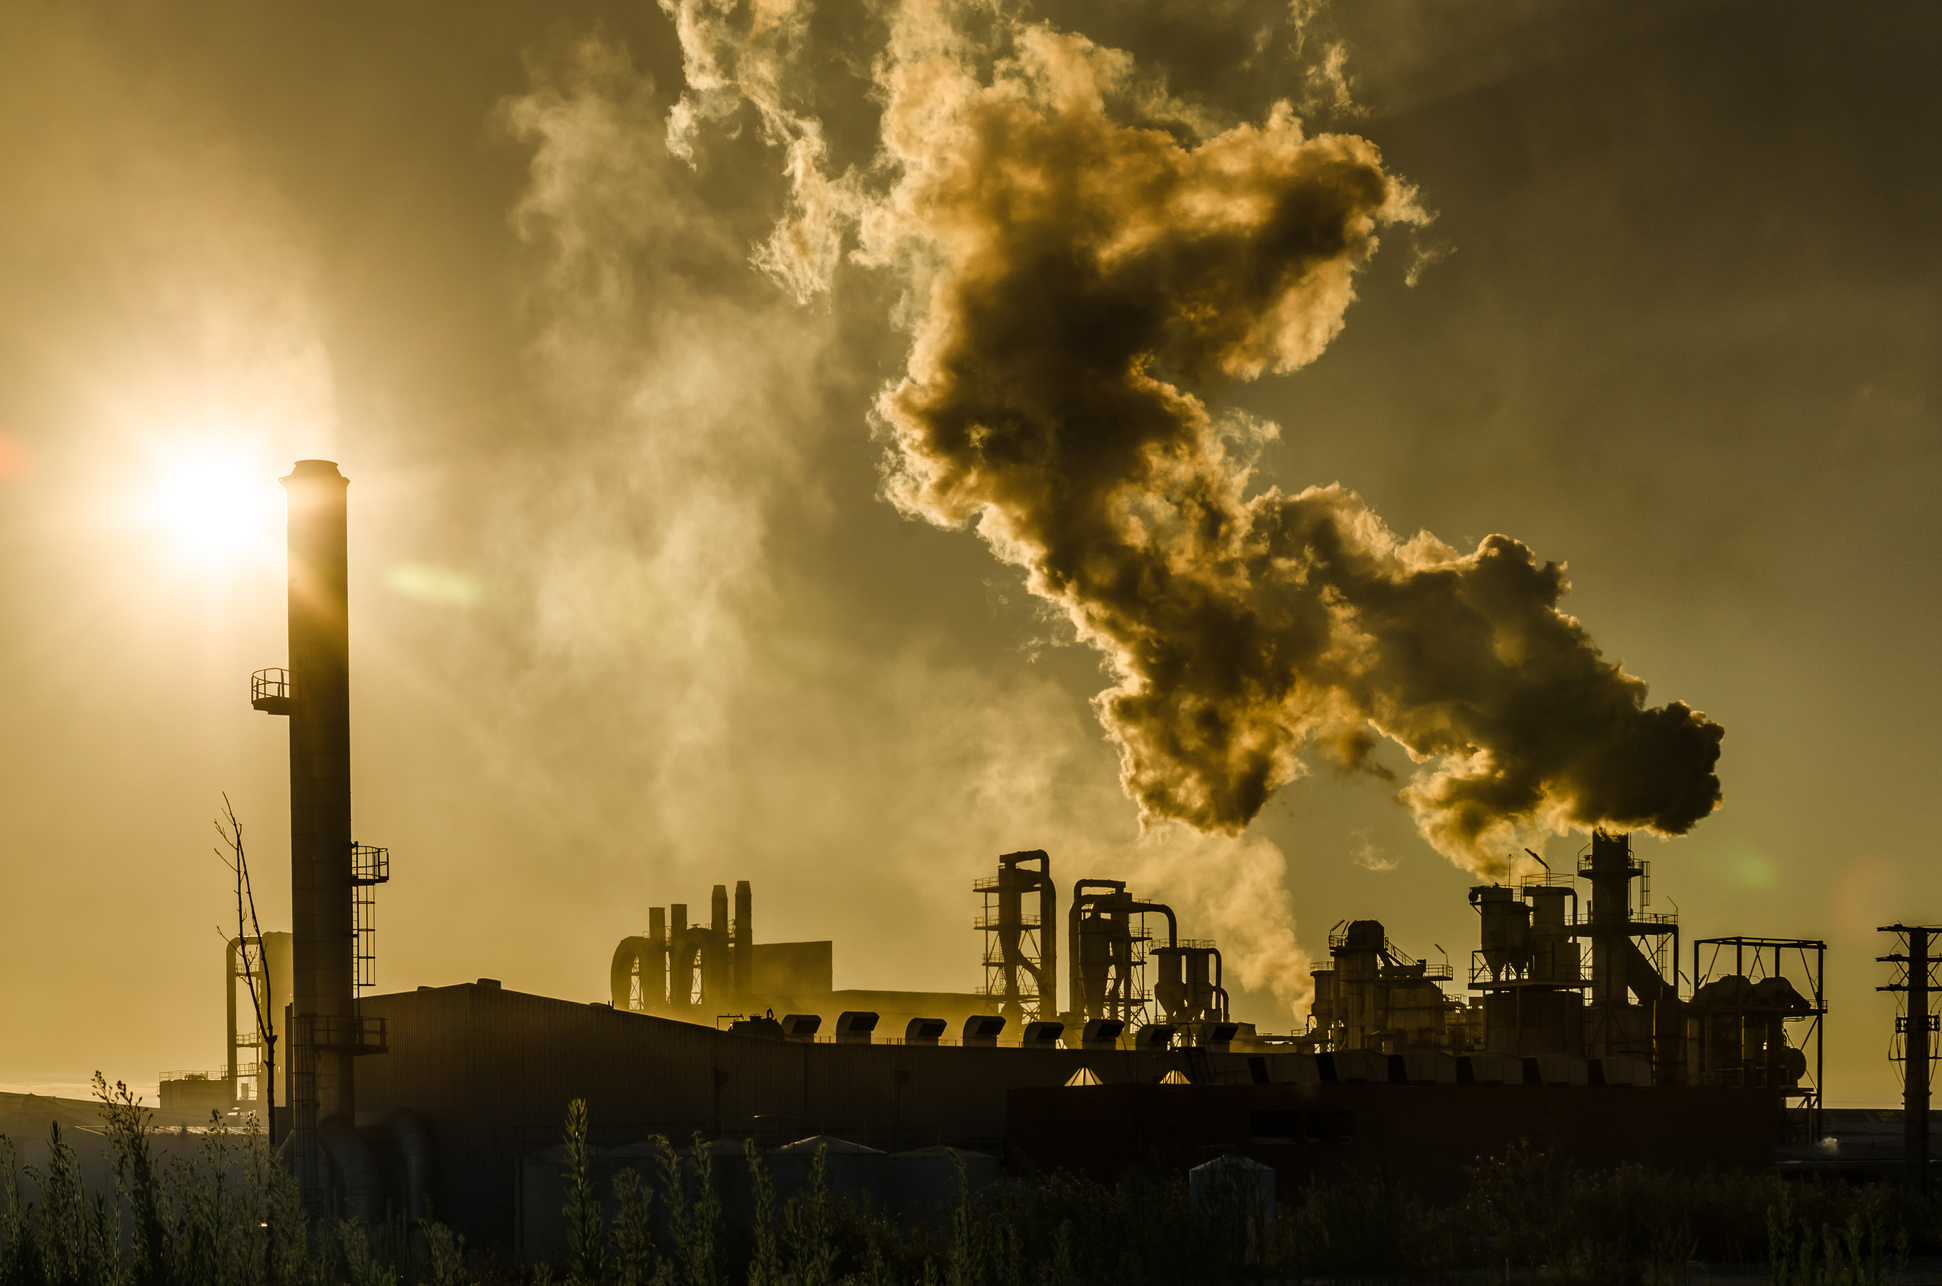 Essay about pollution by factory